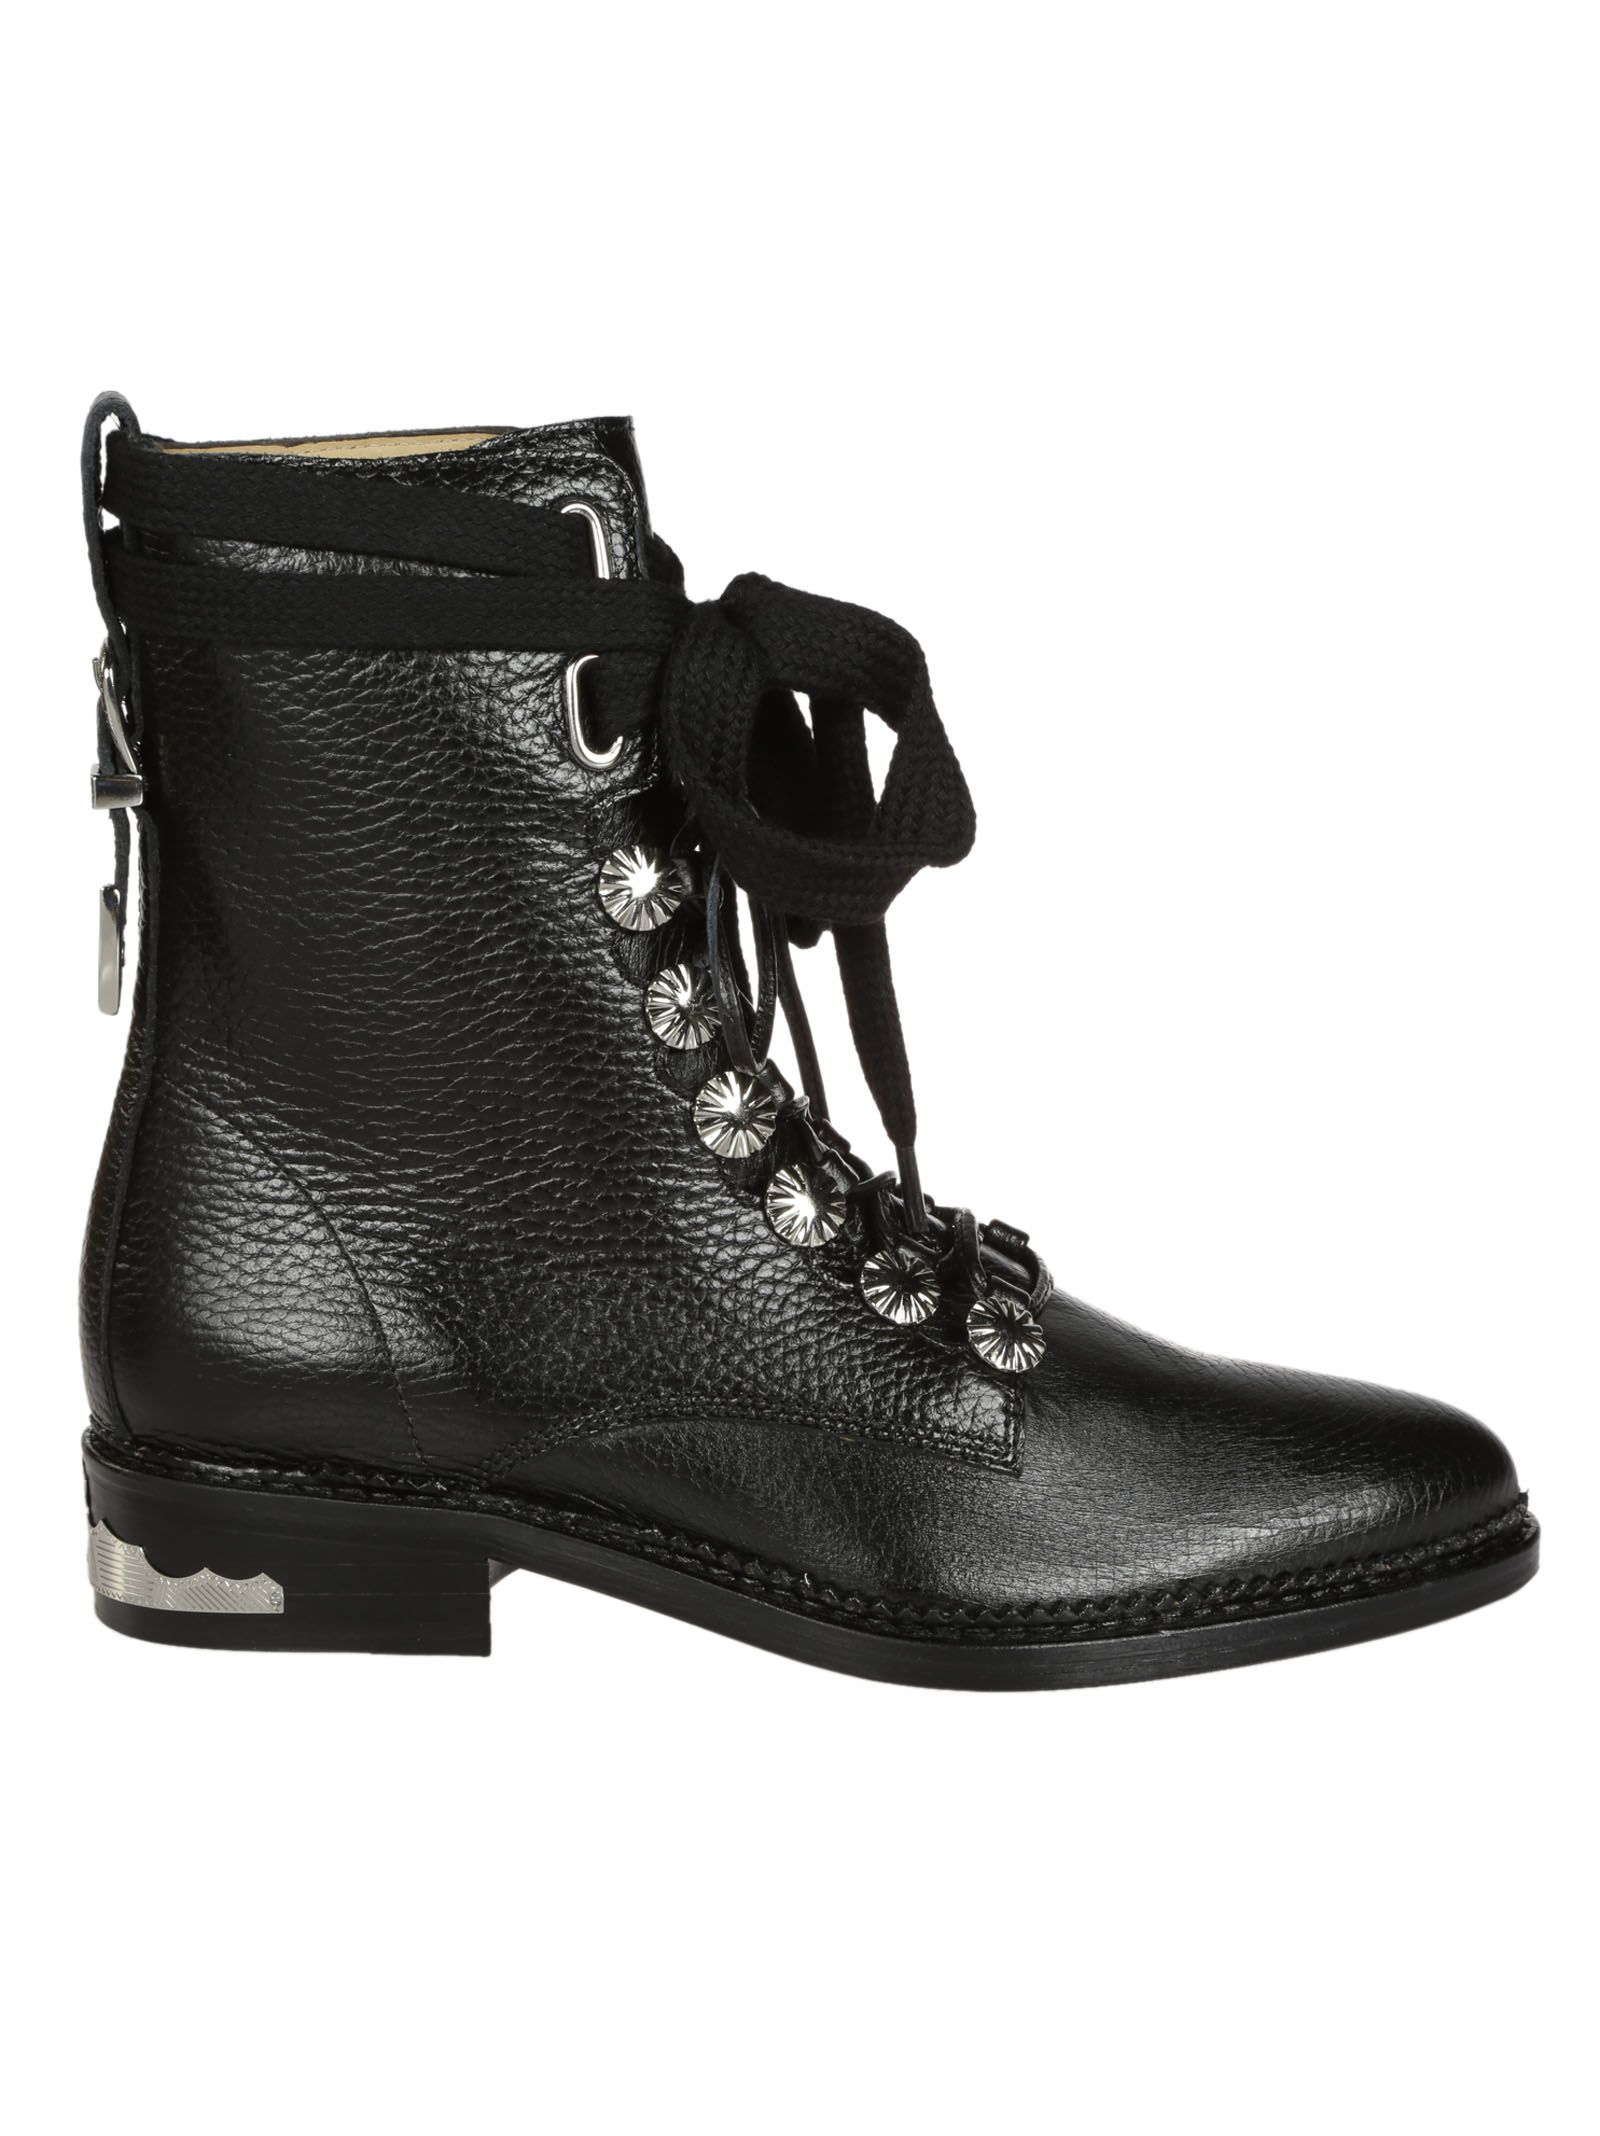 Toga Pulla Tie Detail Boots